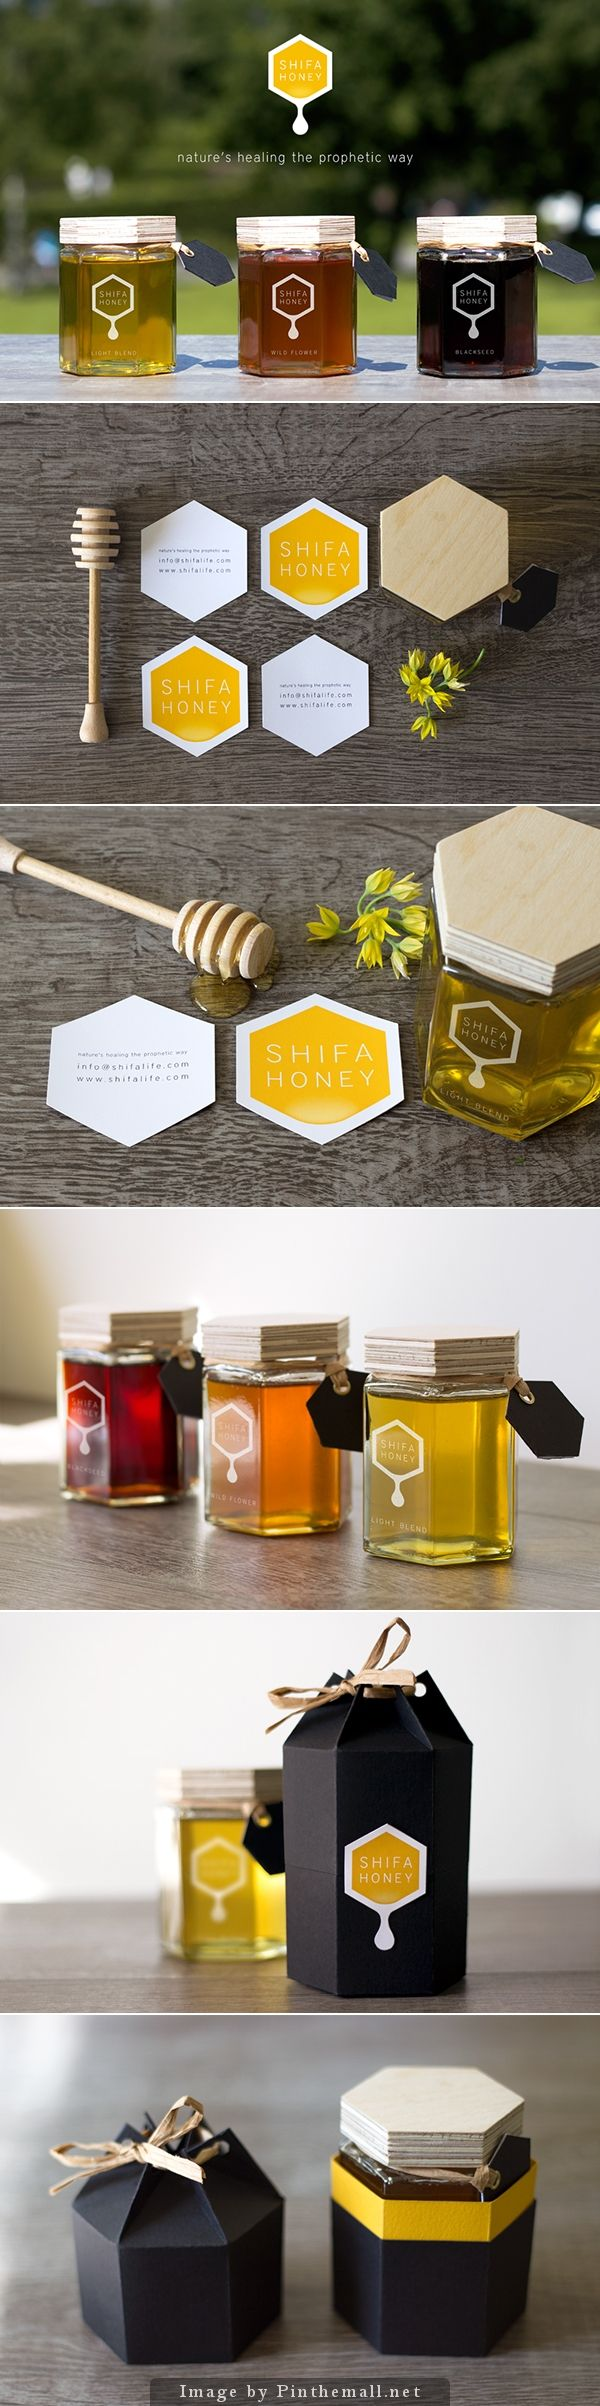 Shifa Honey packaging and logo design.